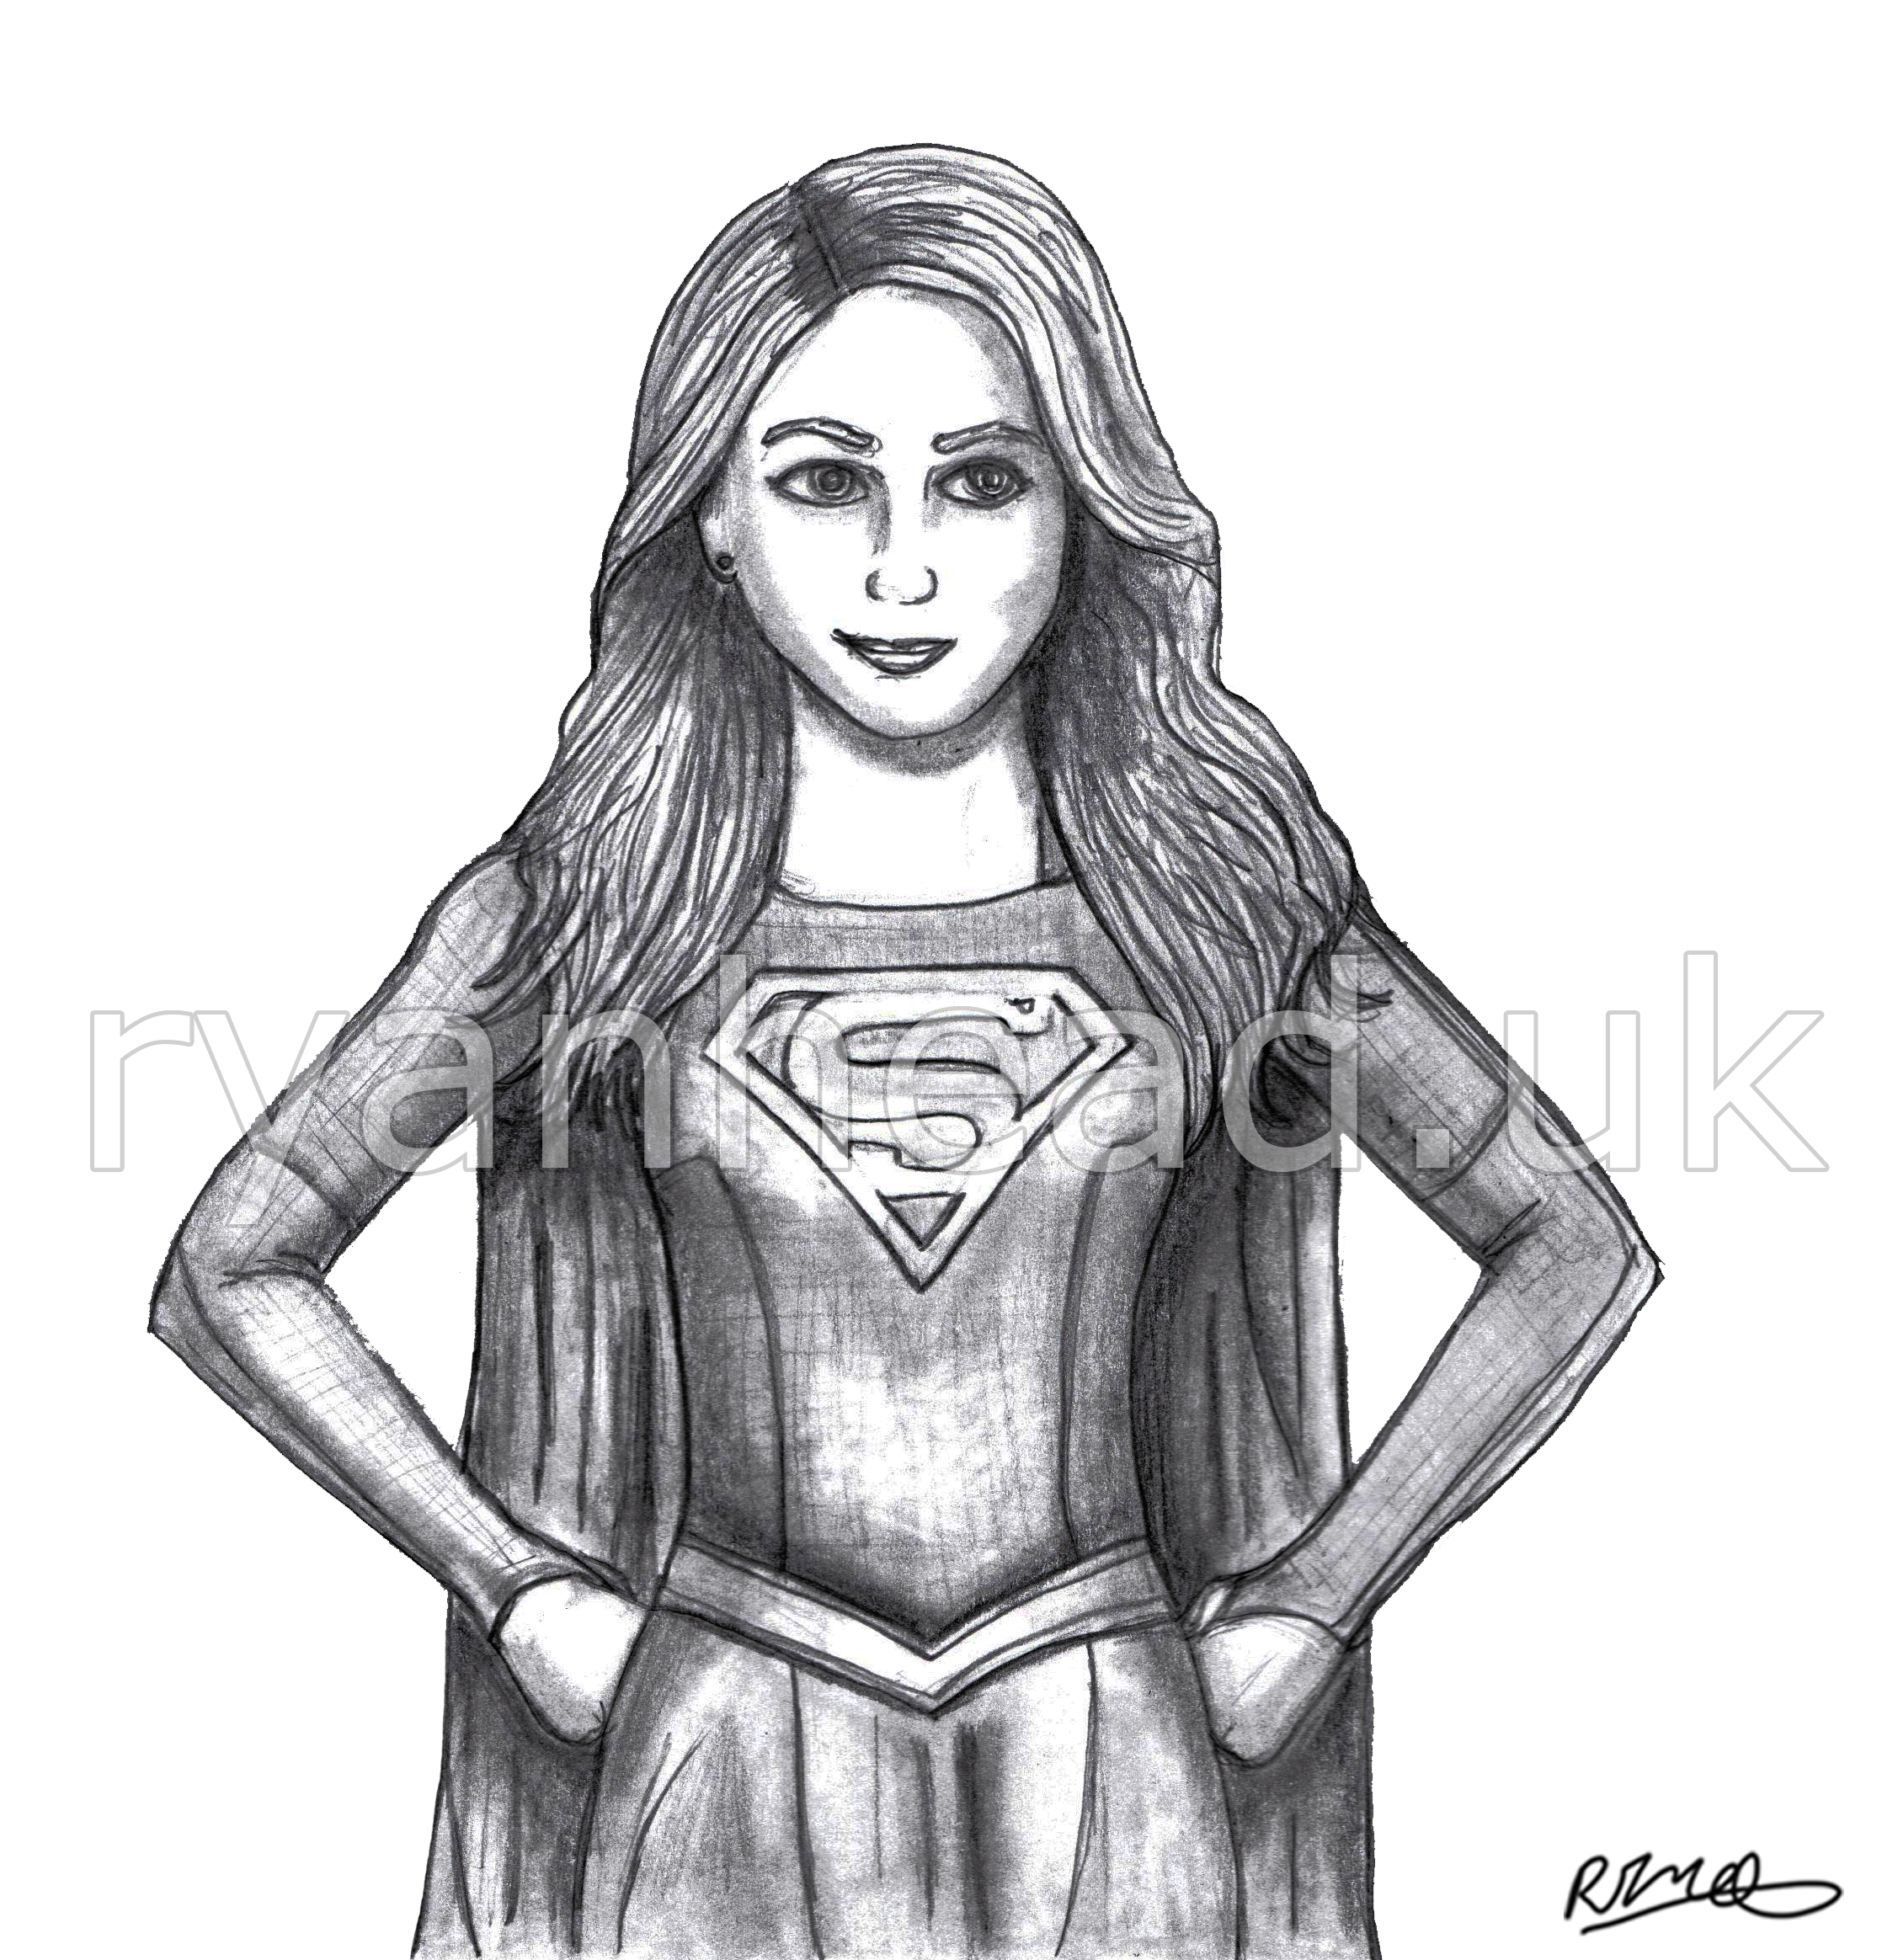 'Supergirl' Sketch